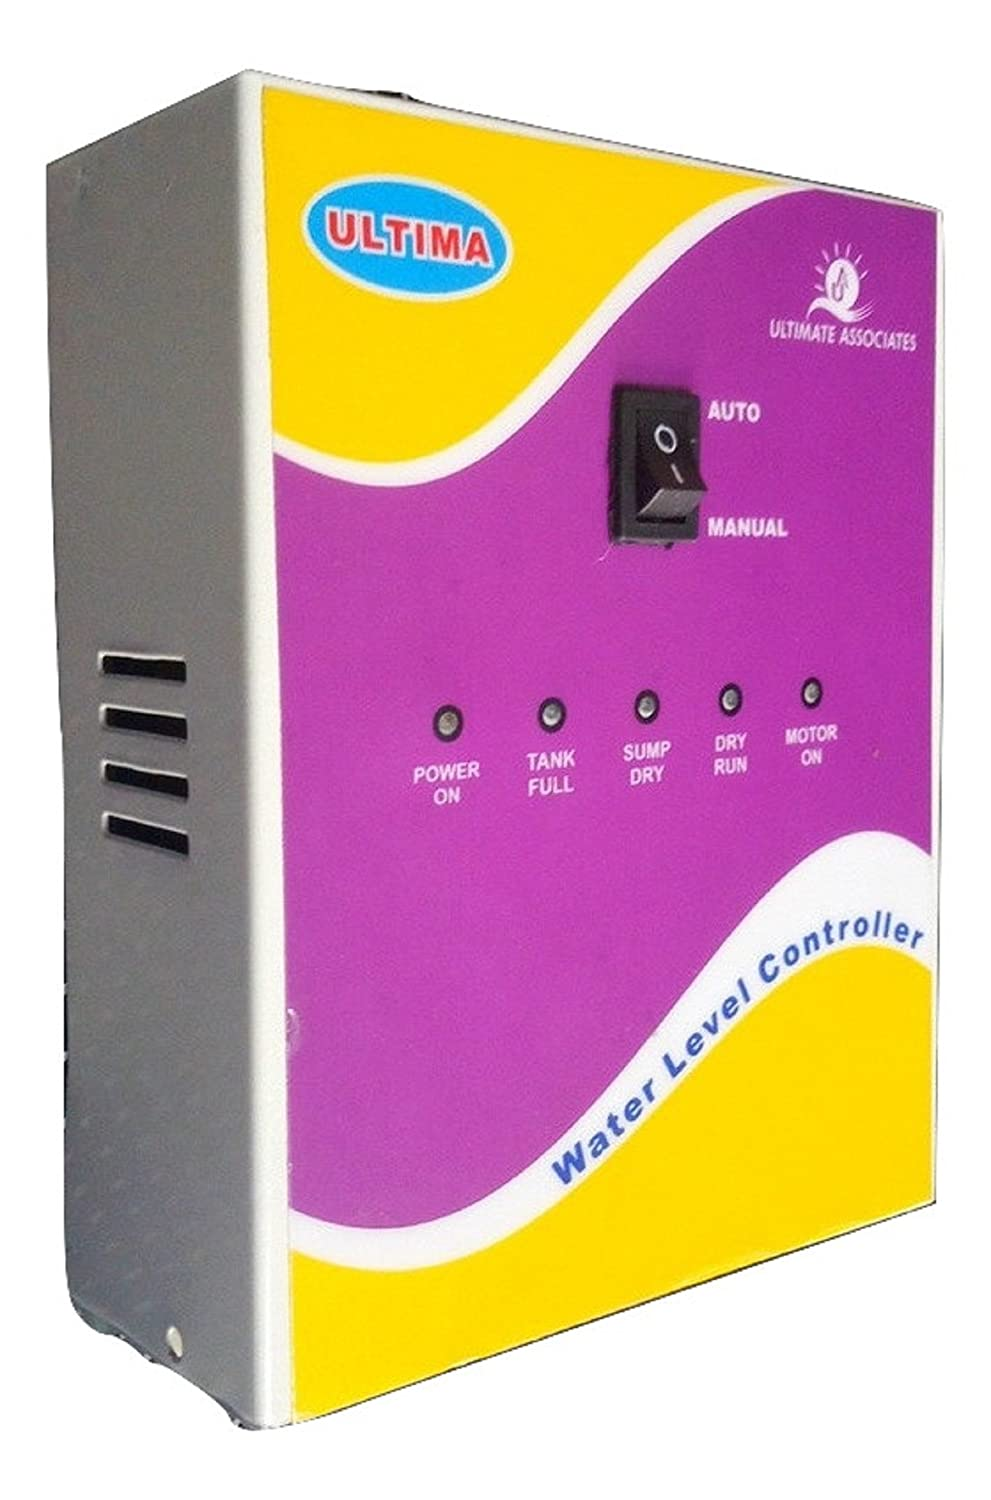 Buy Ultima Automatic Pump Controller With Float Single Phase Motor Motorcycle Engine Wiring Diagram Online At Low Prices In India